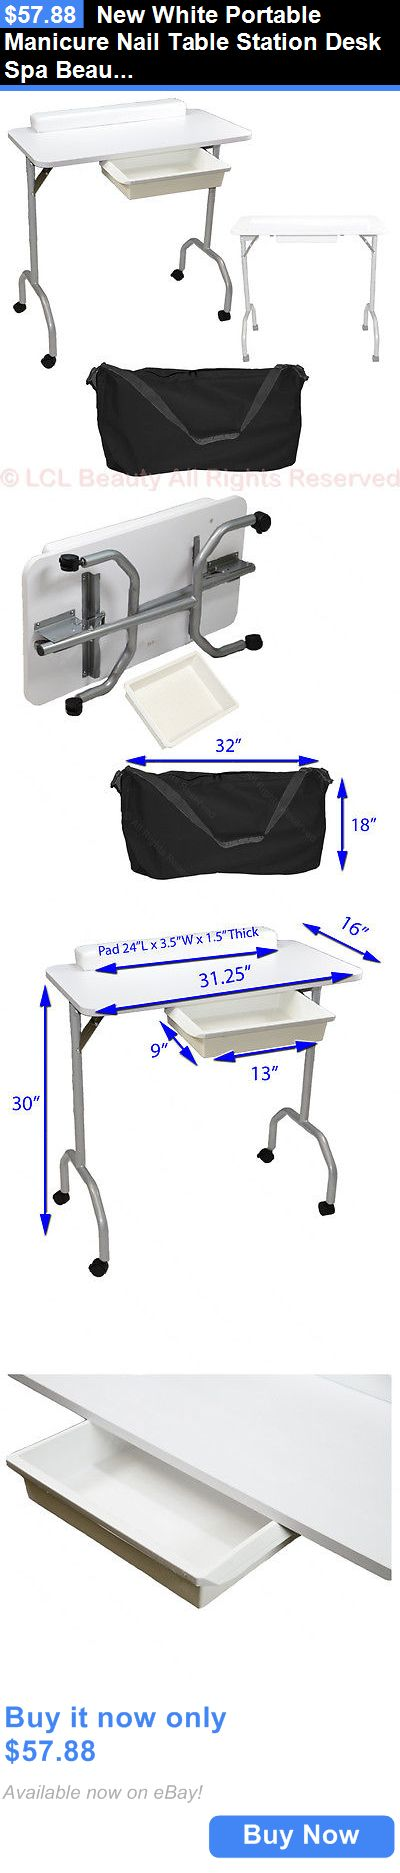 1026 best Manicure Tables images on Pinterest | Zero, Content and ...